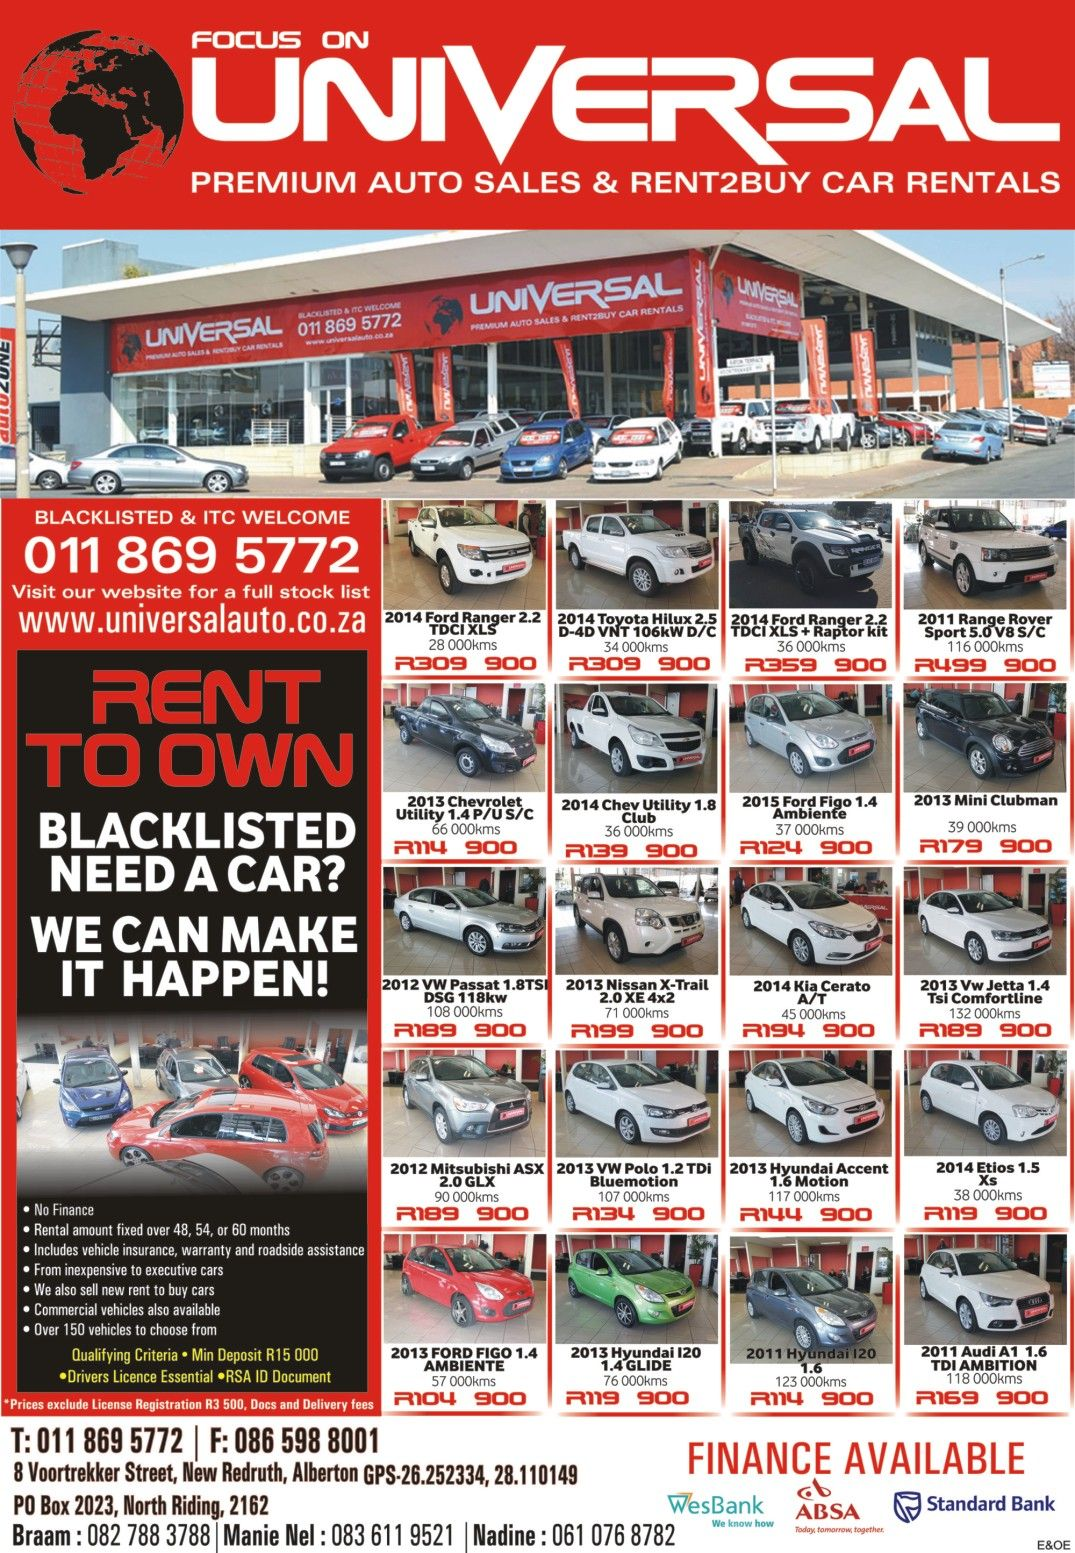 Come View Every Friday Dealers Welcome Universal Auction Every Saturday Starting From 12 Noon Have Any Plan Cars For Sale Car Rental Mini Clubman